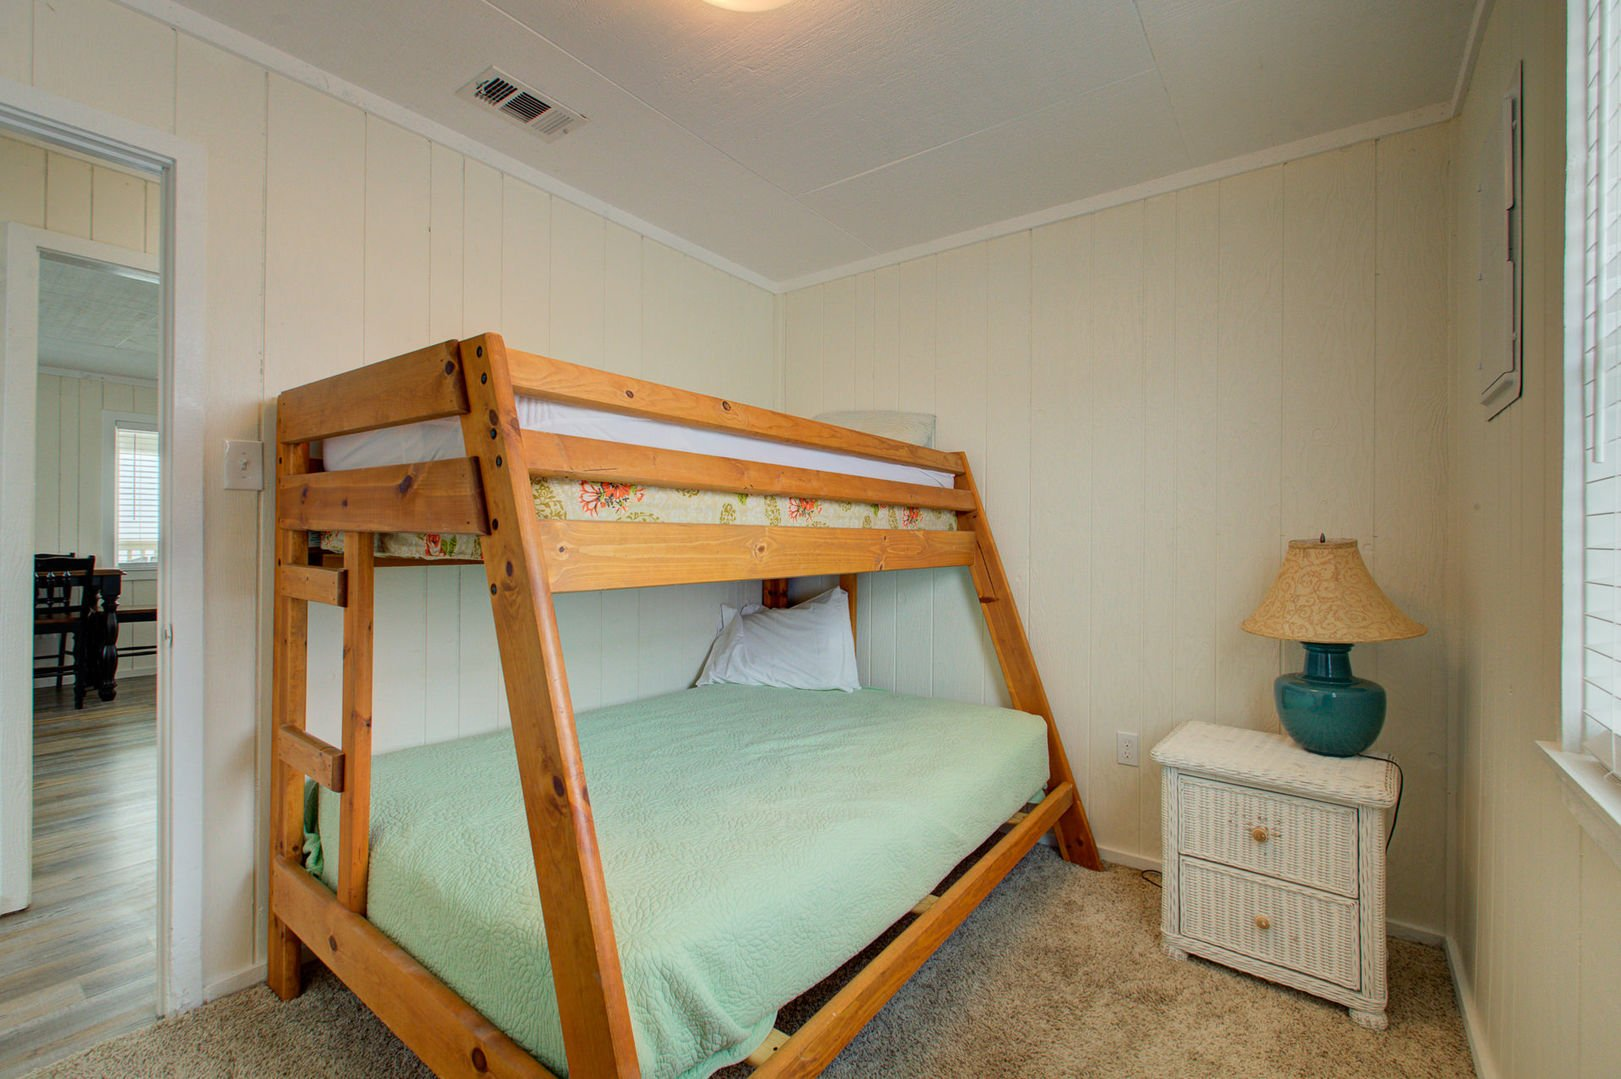 Bedroom #3 sleeps 3 on a bunk bed with a full bed on the bottom.